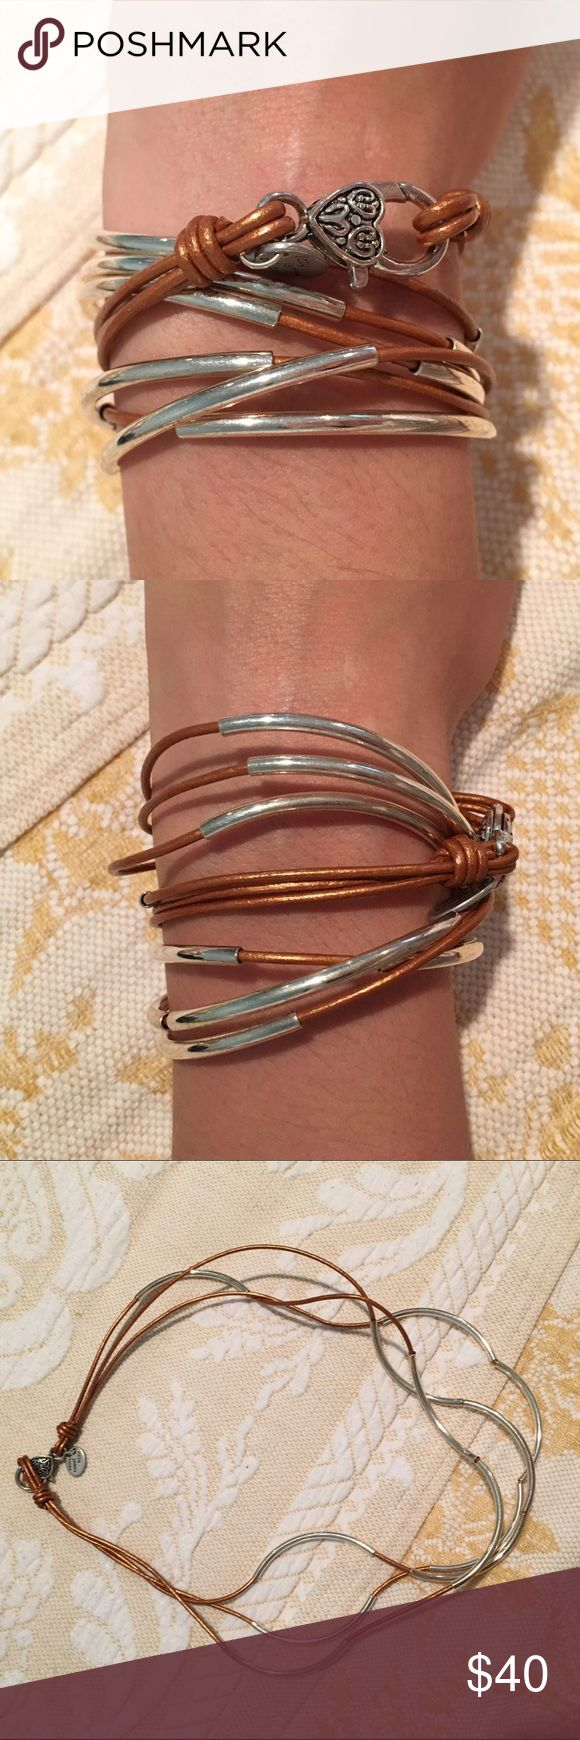 """Lizzy James Design - 3 strand wrap bracelet Made of metallic gold leather and silver plated metal. Can be worn as a necklace or bracelet. About 20"""" long Lizzy James Jewelry Bracelets"""